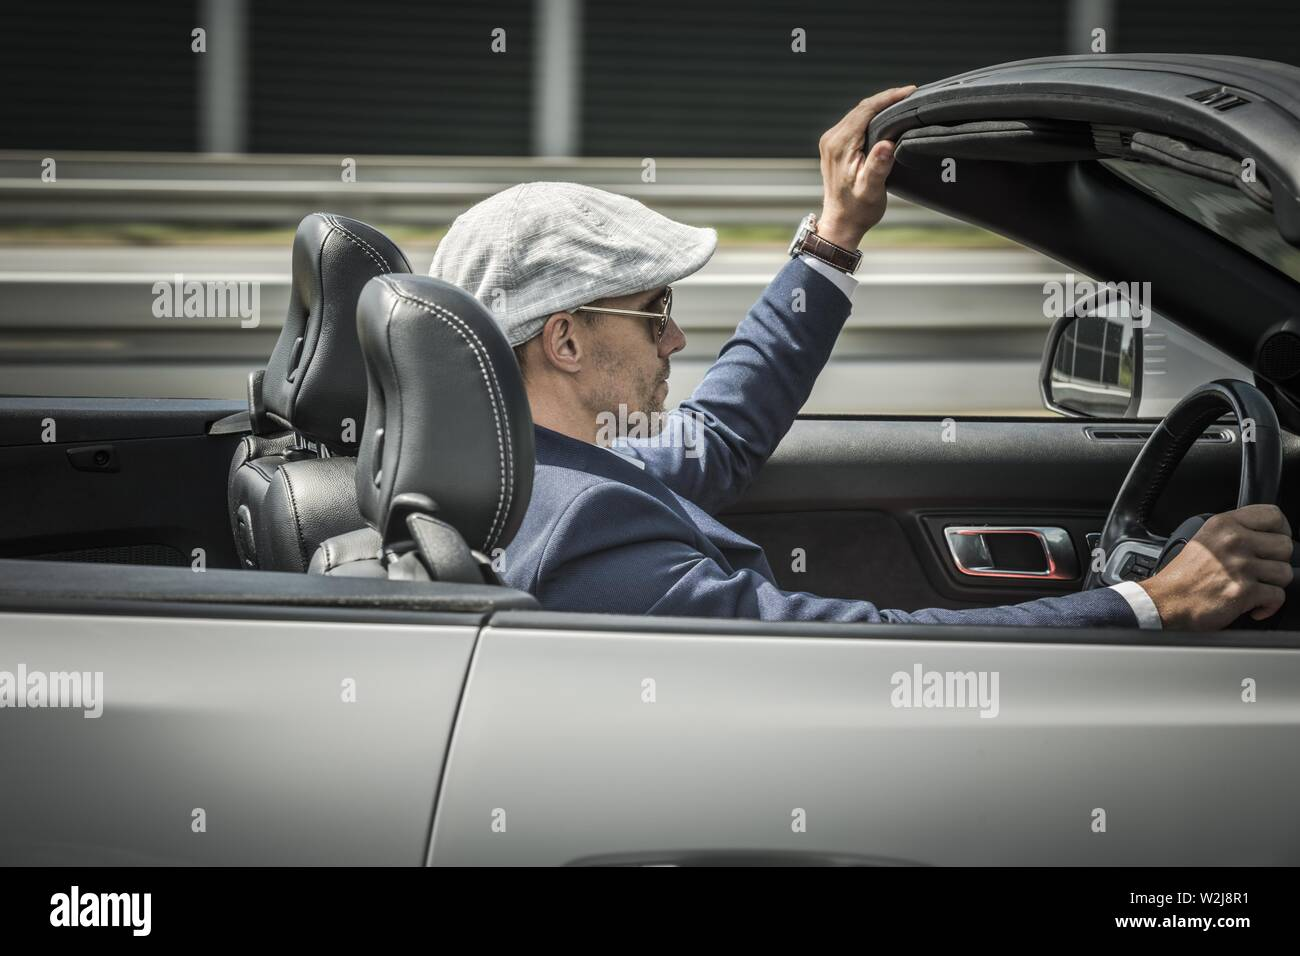 Convertible Car Freedom Drive. Caucasian Driver in His 30s Wearing Stylish Beret Behind the Wheel of Modern Cabriolet Vehicle. - Stock Image